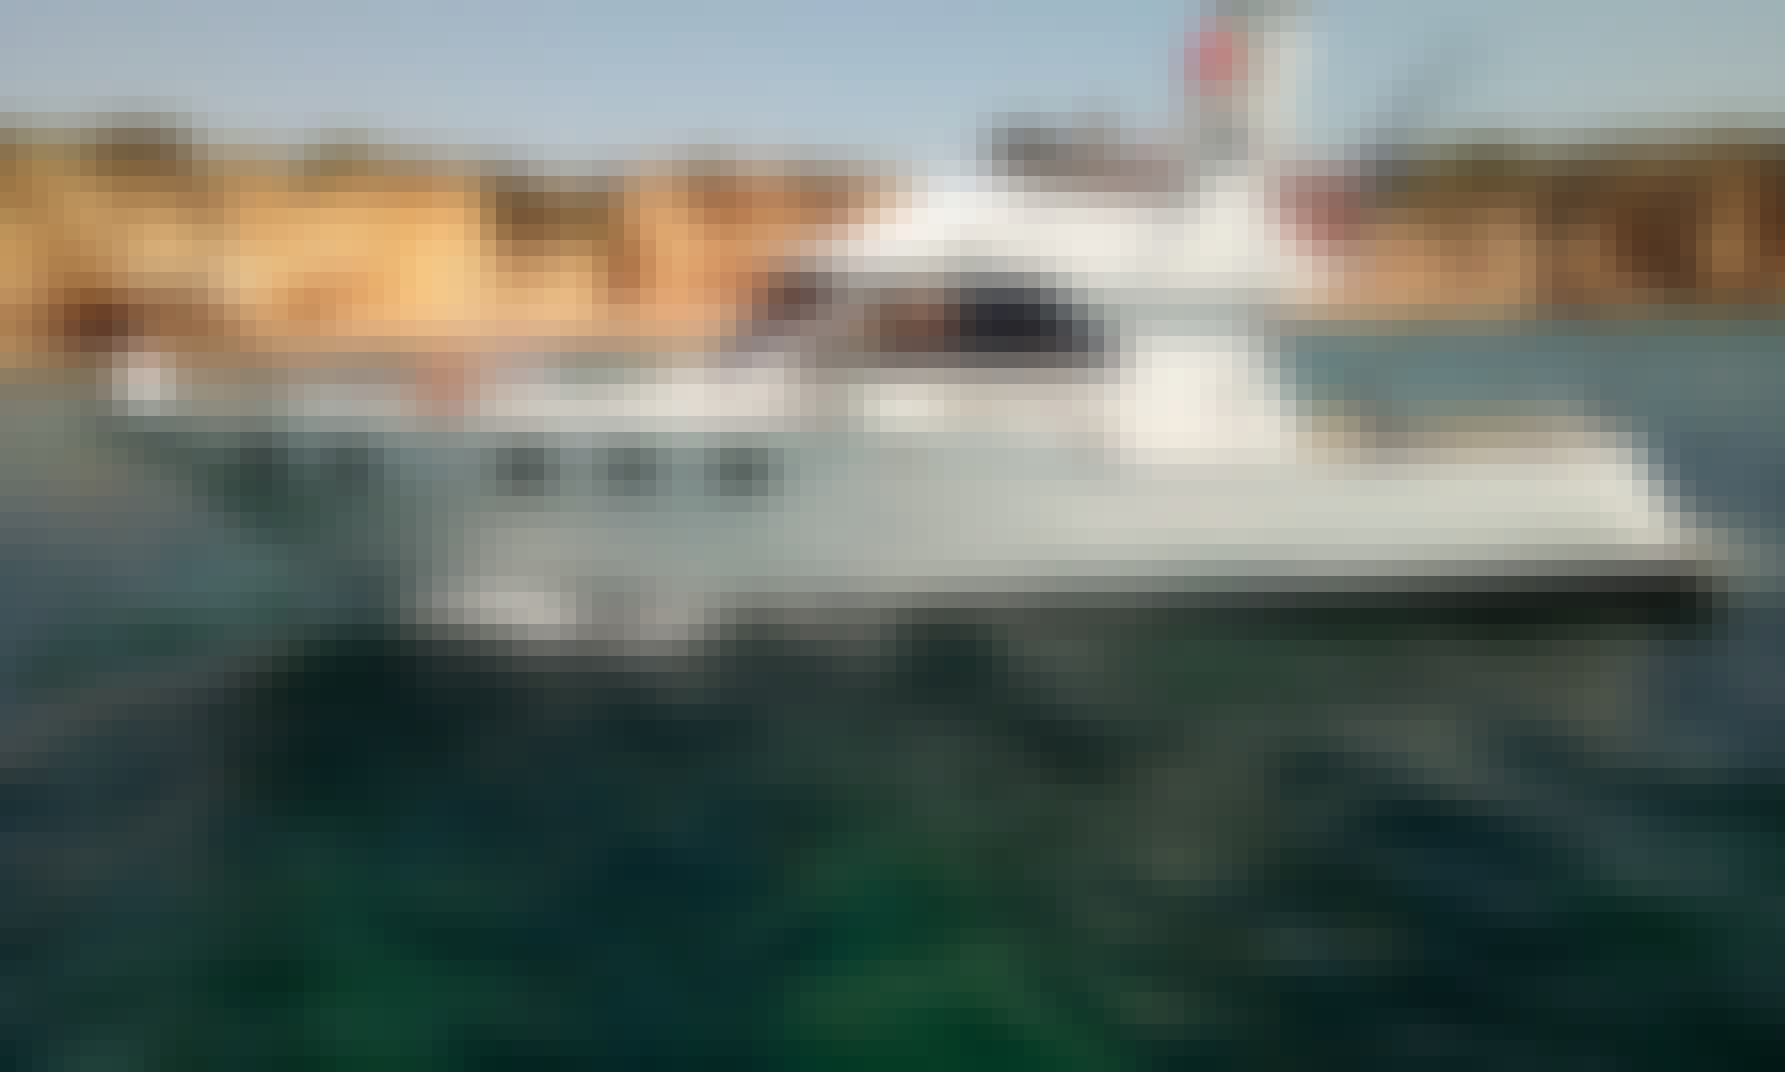 58' Striker Motor Yacht Charter for Up to 12 People in Albufeira, Portugal